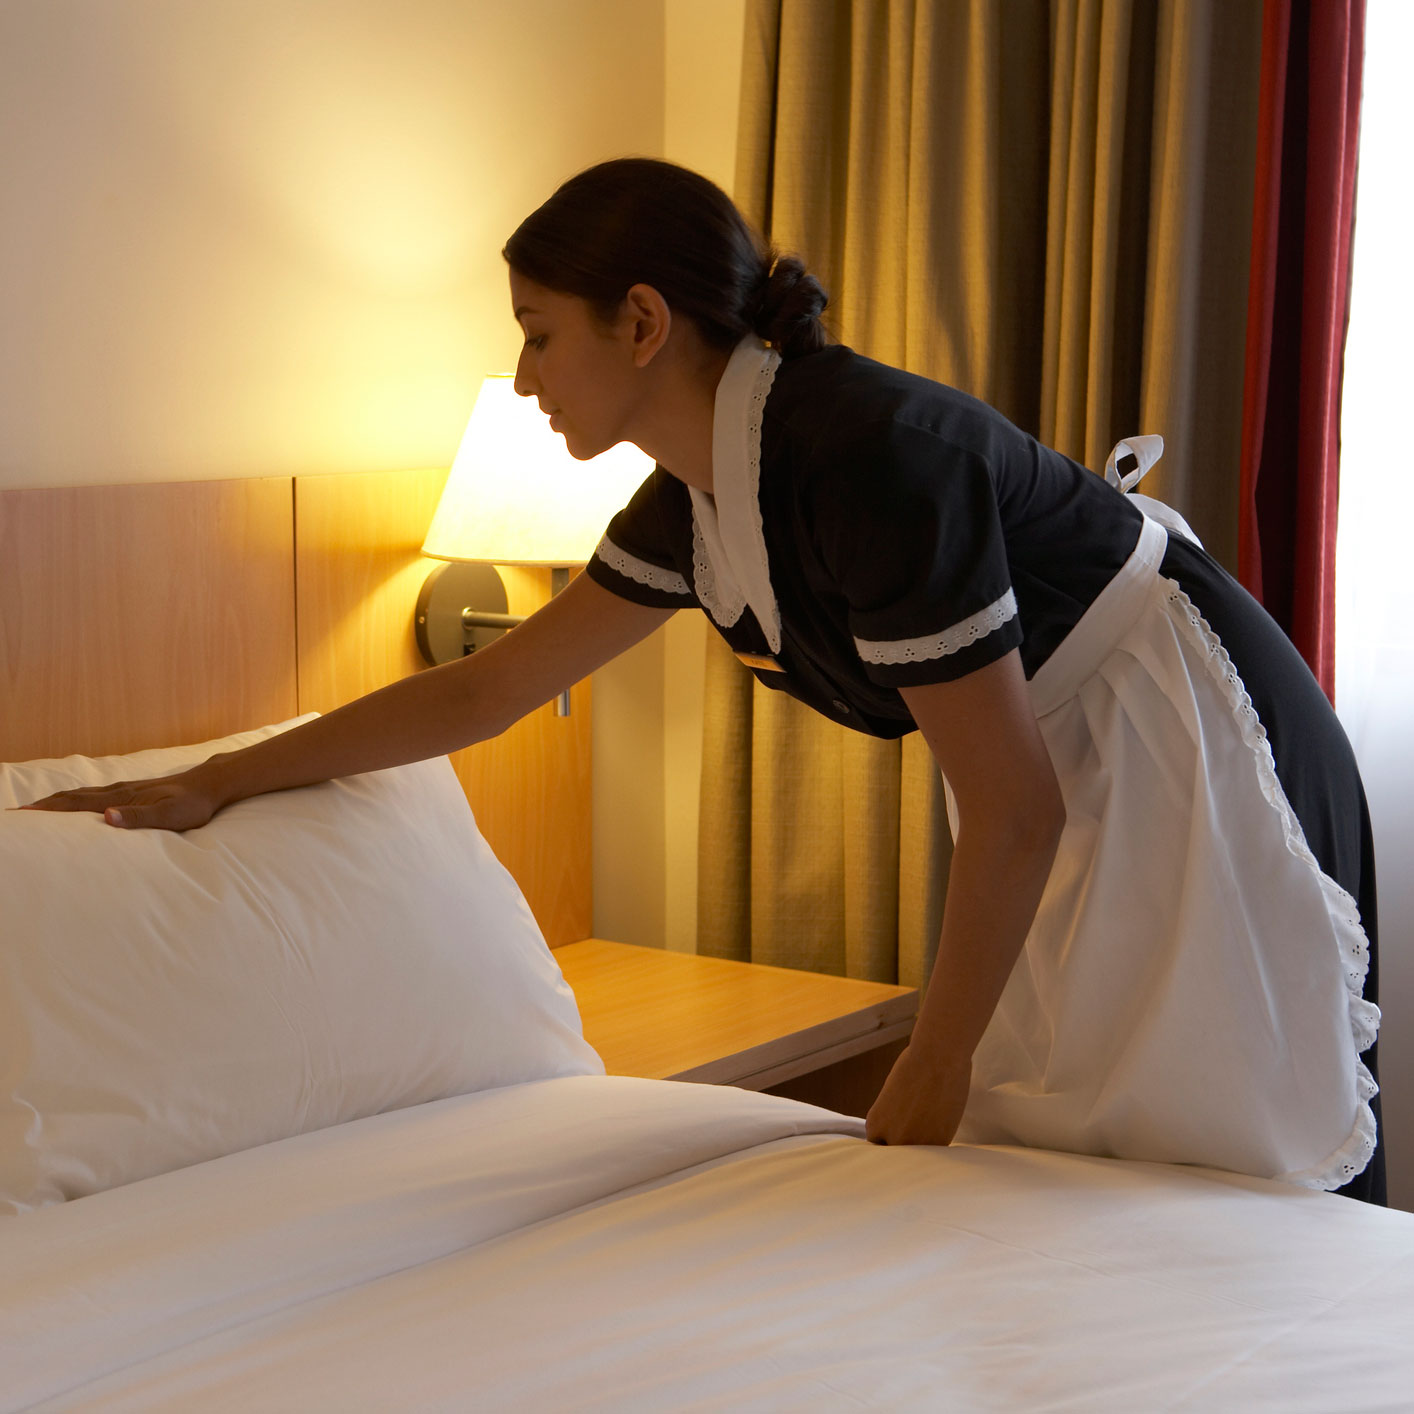 Hotel Housekeeping Services: Tips For Your Housekeeping Improvement Plan